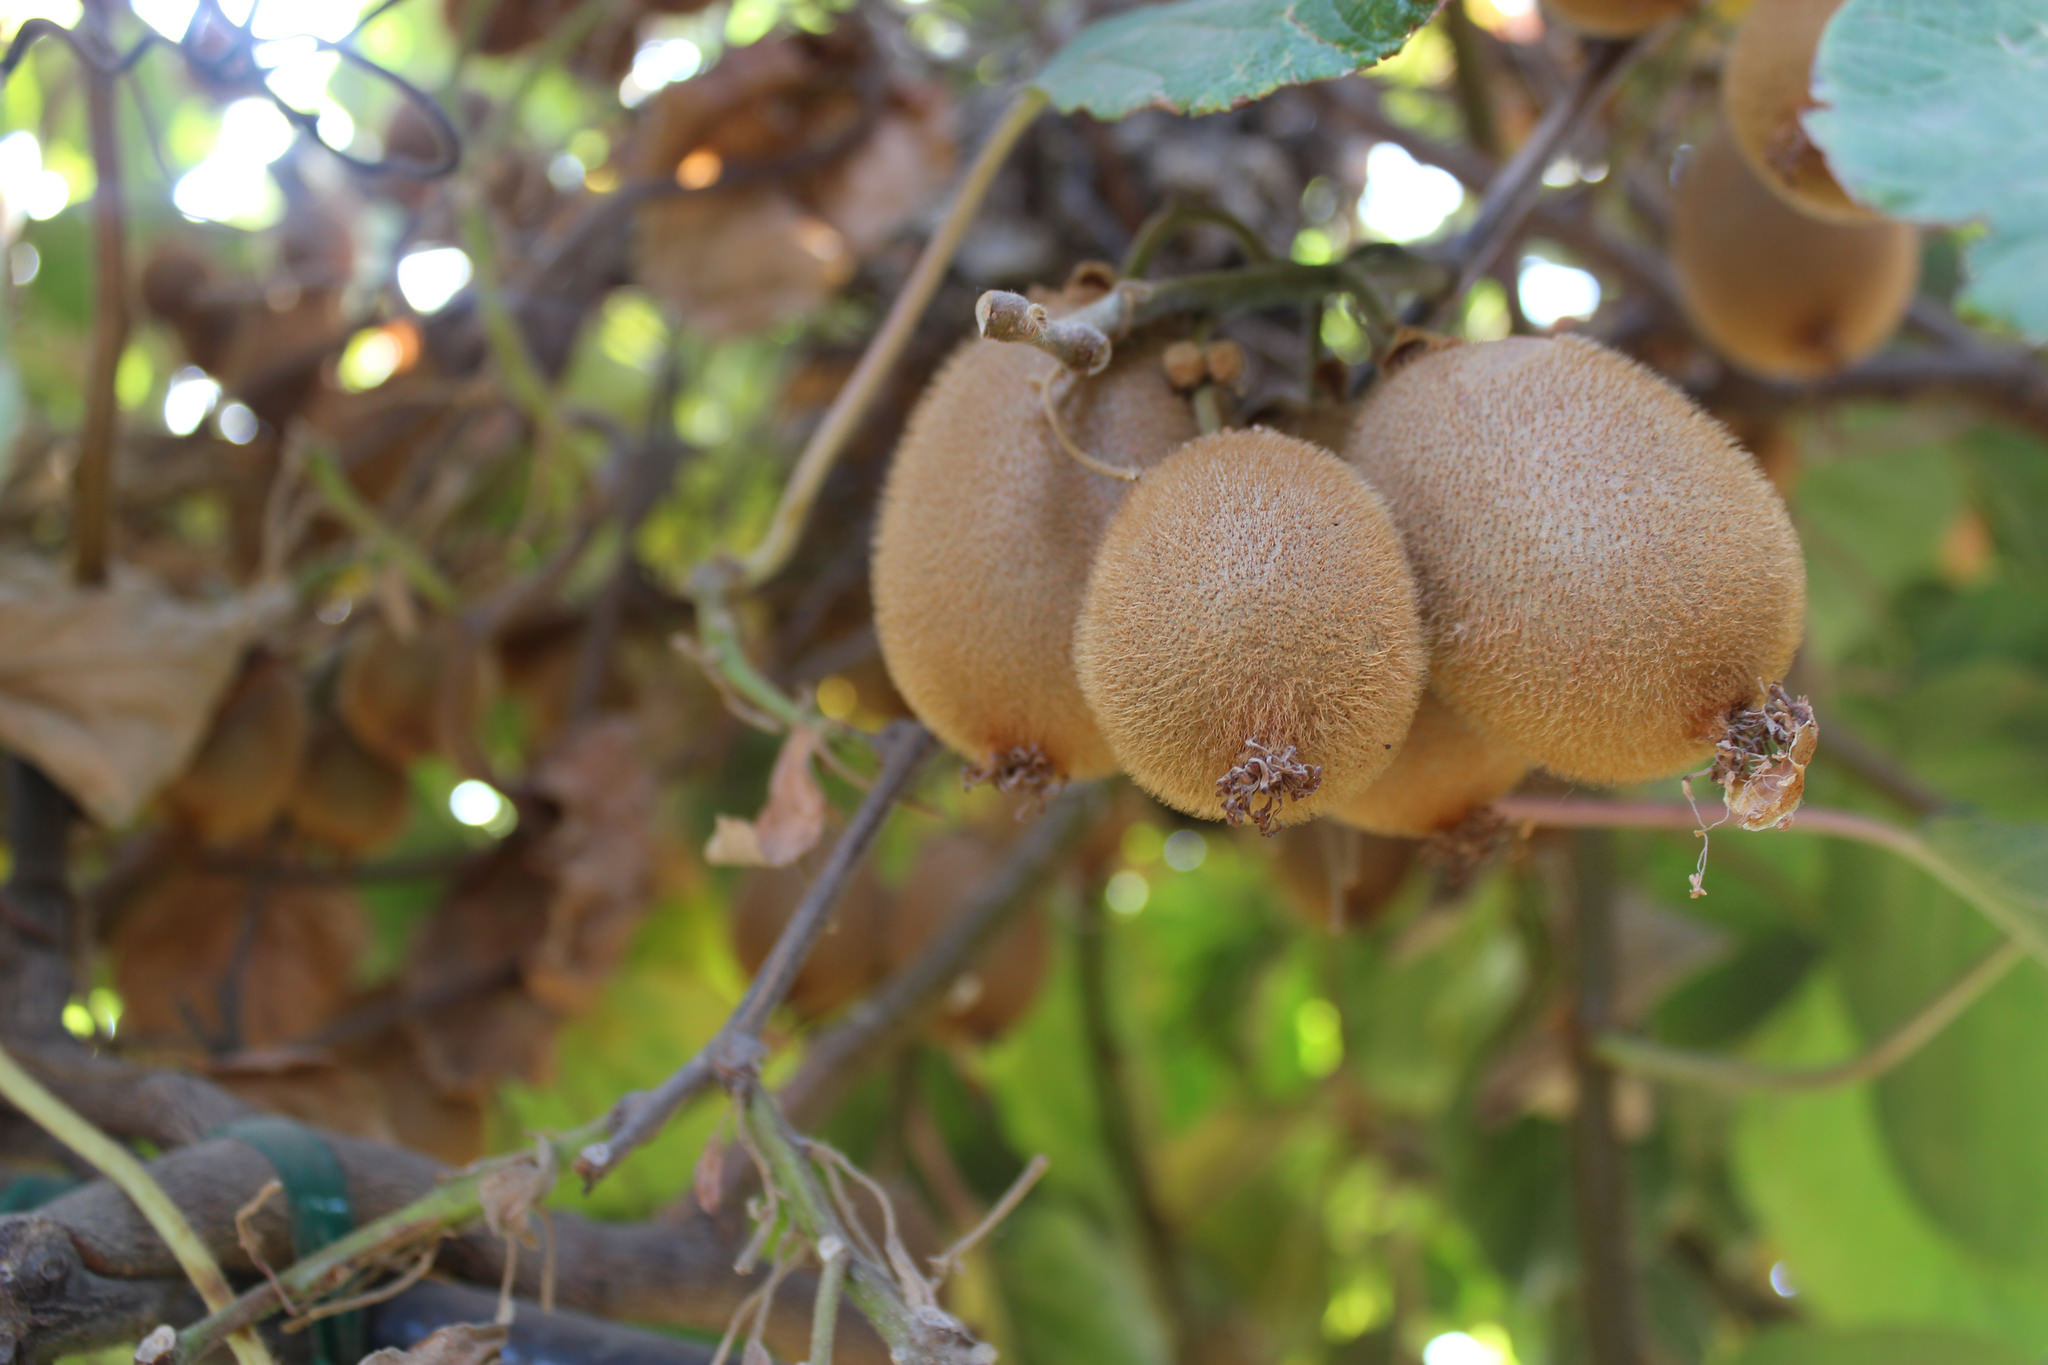 Kiwis on the vine